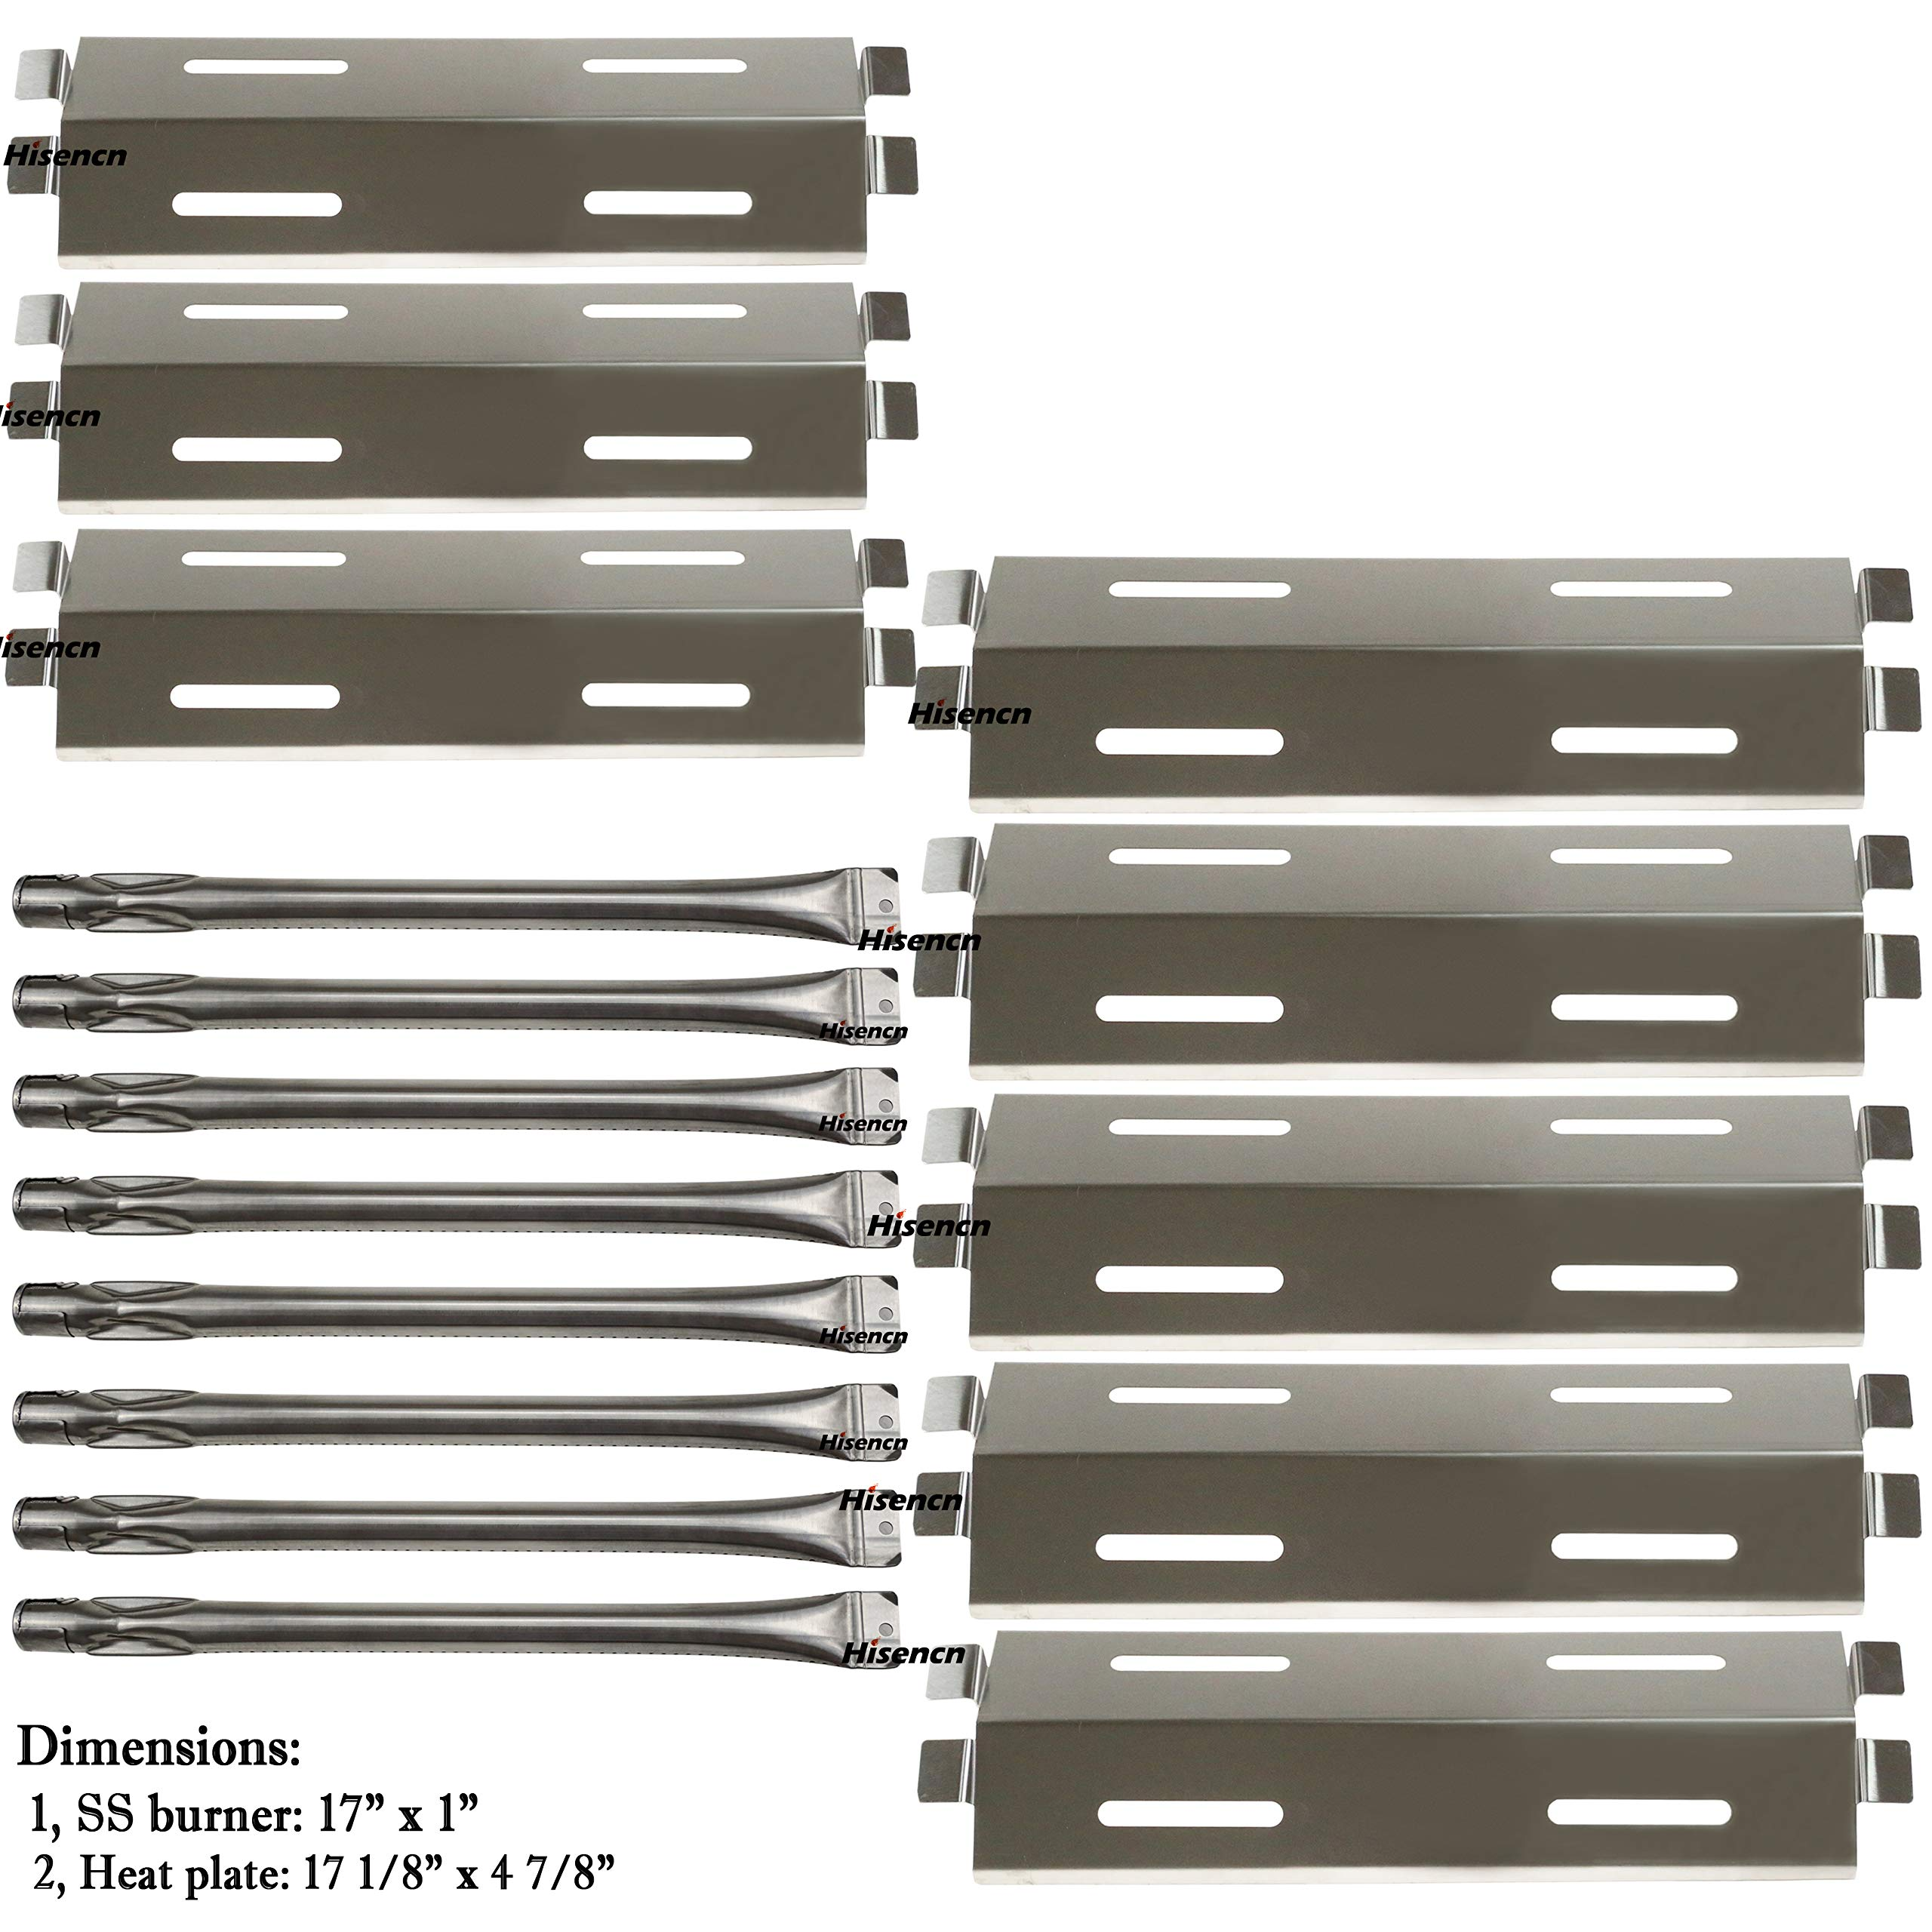 Hisencn 8Pack Repair Kit Stainless Steel Grill Burners,Heat Plates, Heat Shield Replacement for Bakers and Chefs GR2039201-BC-00, GD430, ST1017-012939, Grill Chef, Members Mark Gas Grill Models by Hisencn